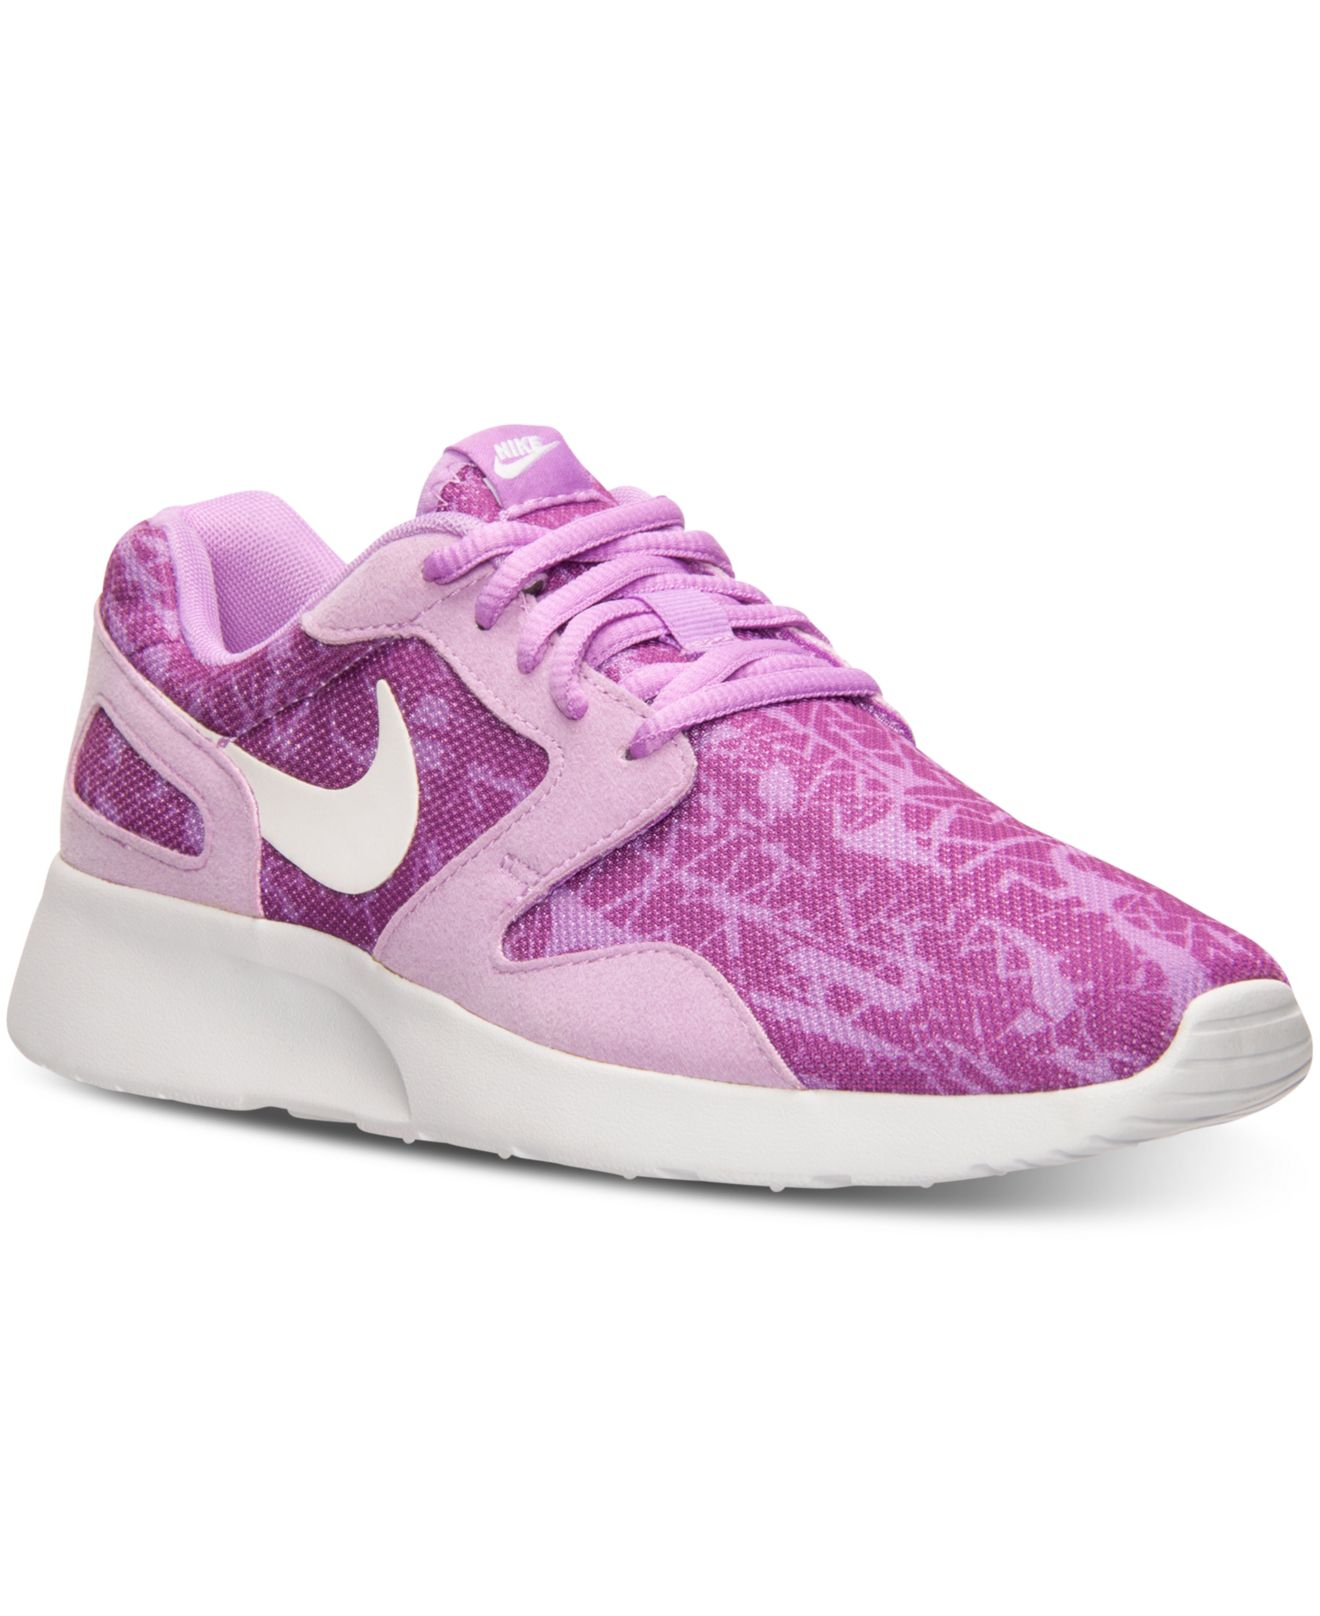 size 40 87702 aee67 ... where can i buy lyst nike womens kaishi print casual sneakers from  finish line in 6429c